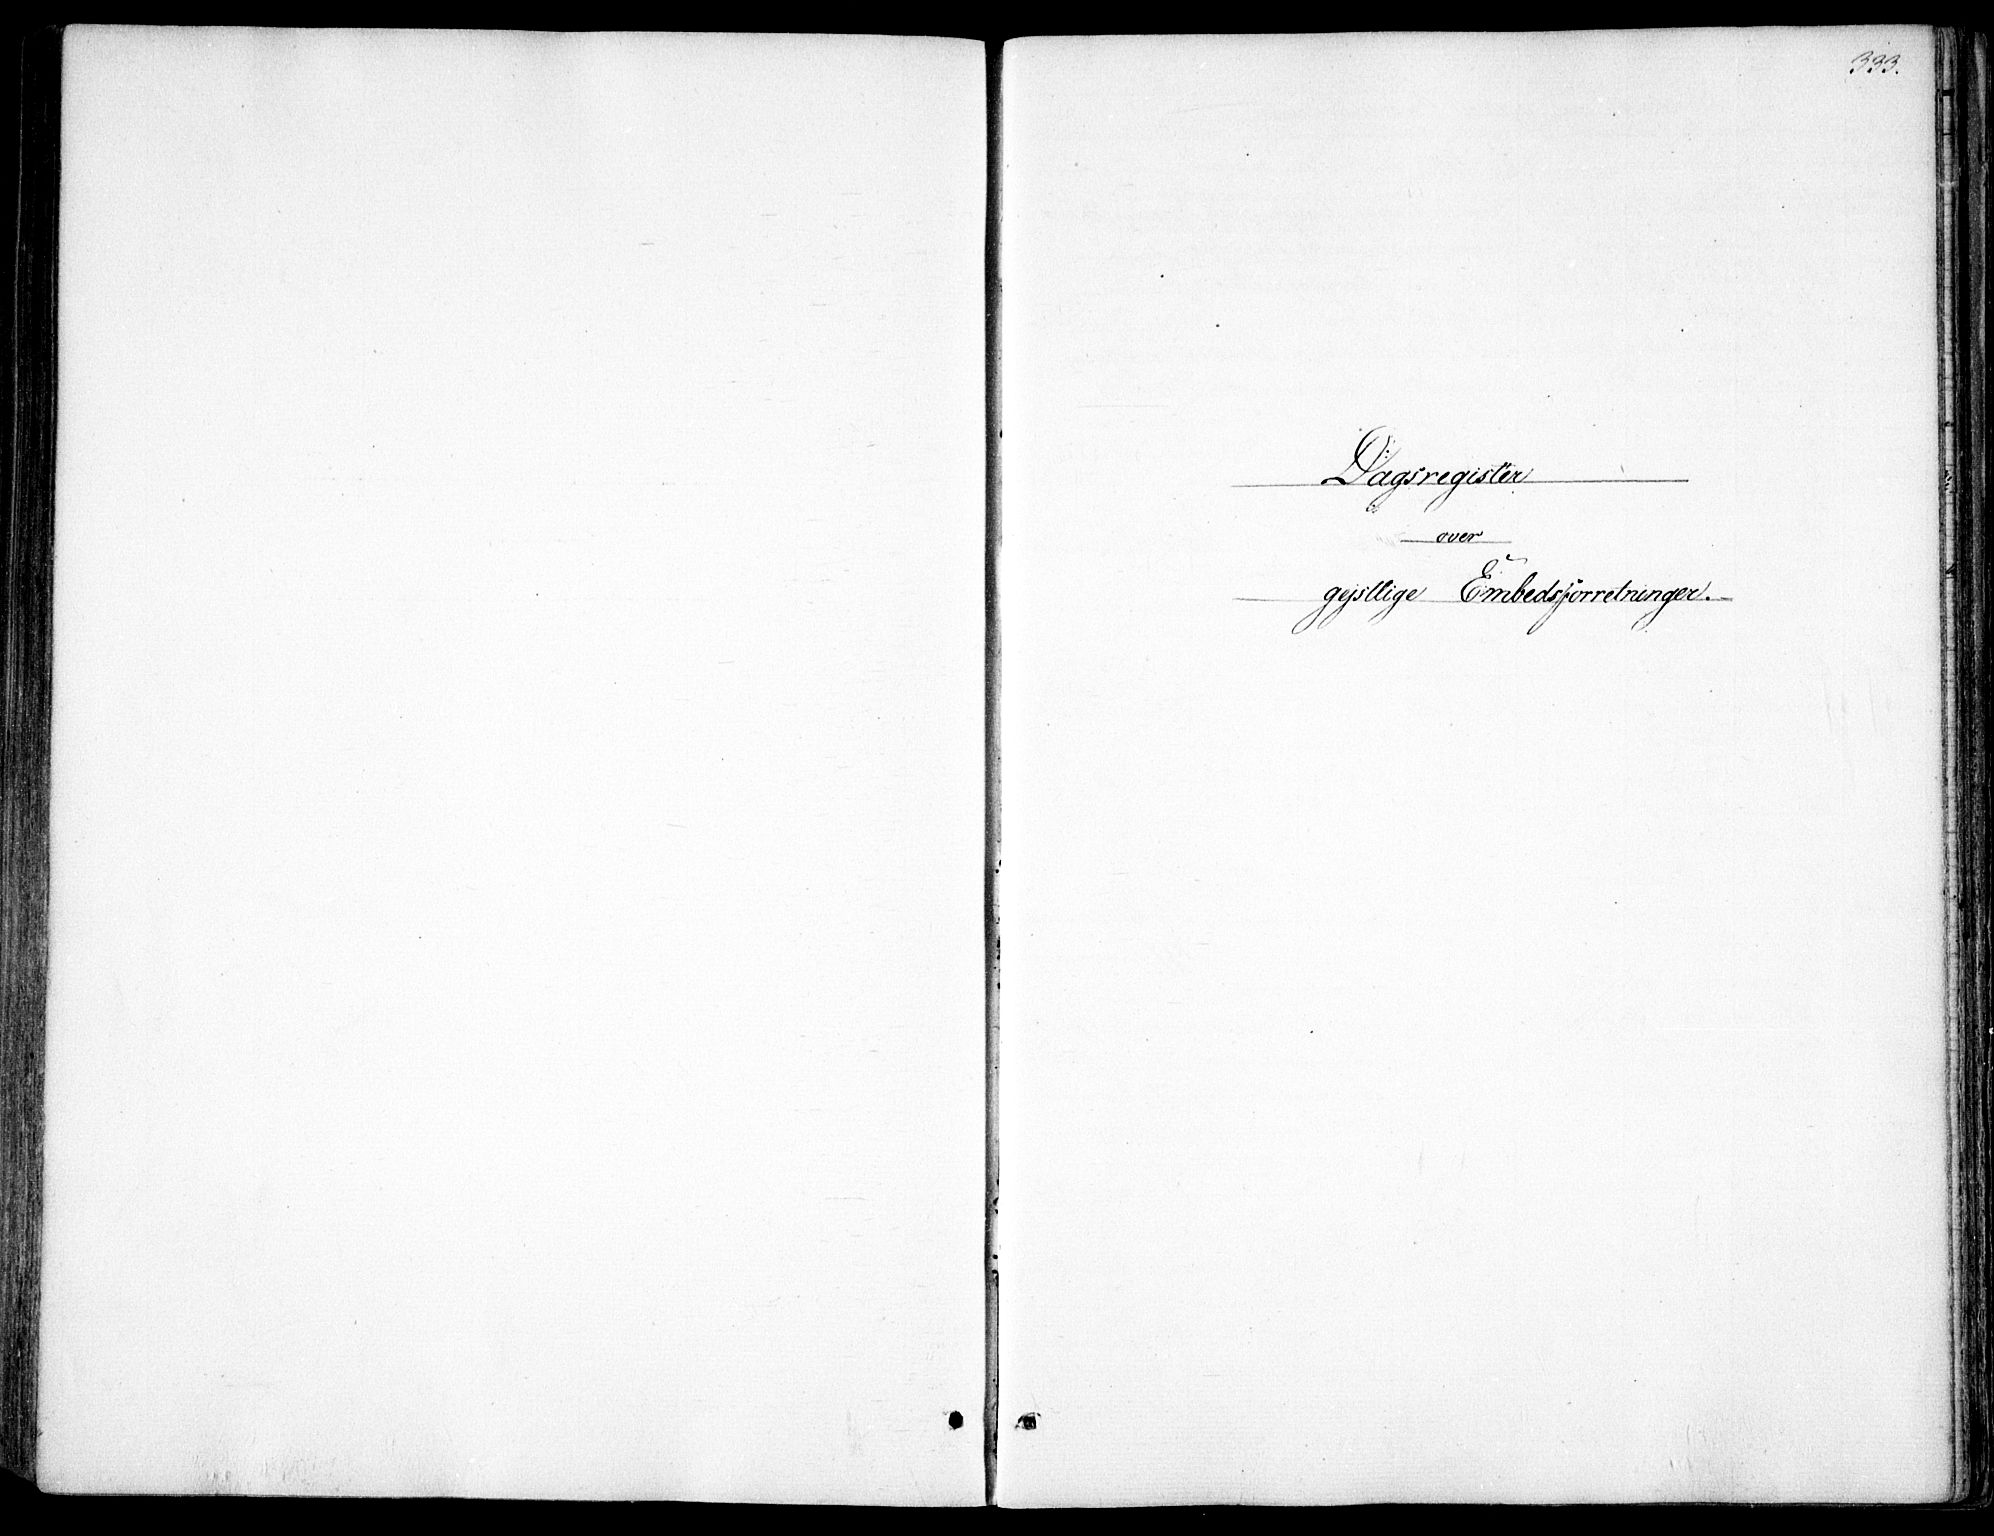 SAO, Garnisonsmenigheten Kirkebøker, F/Fa/L0009: Parish register (official) no. 9, 1842-1859, p. 333